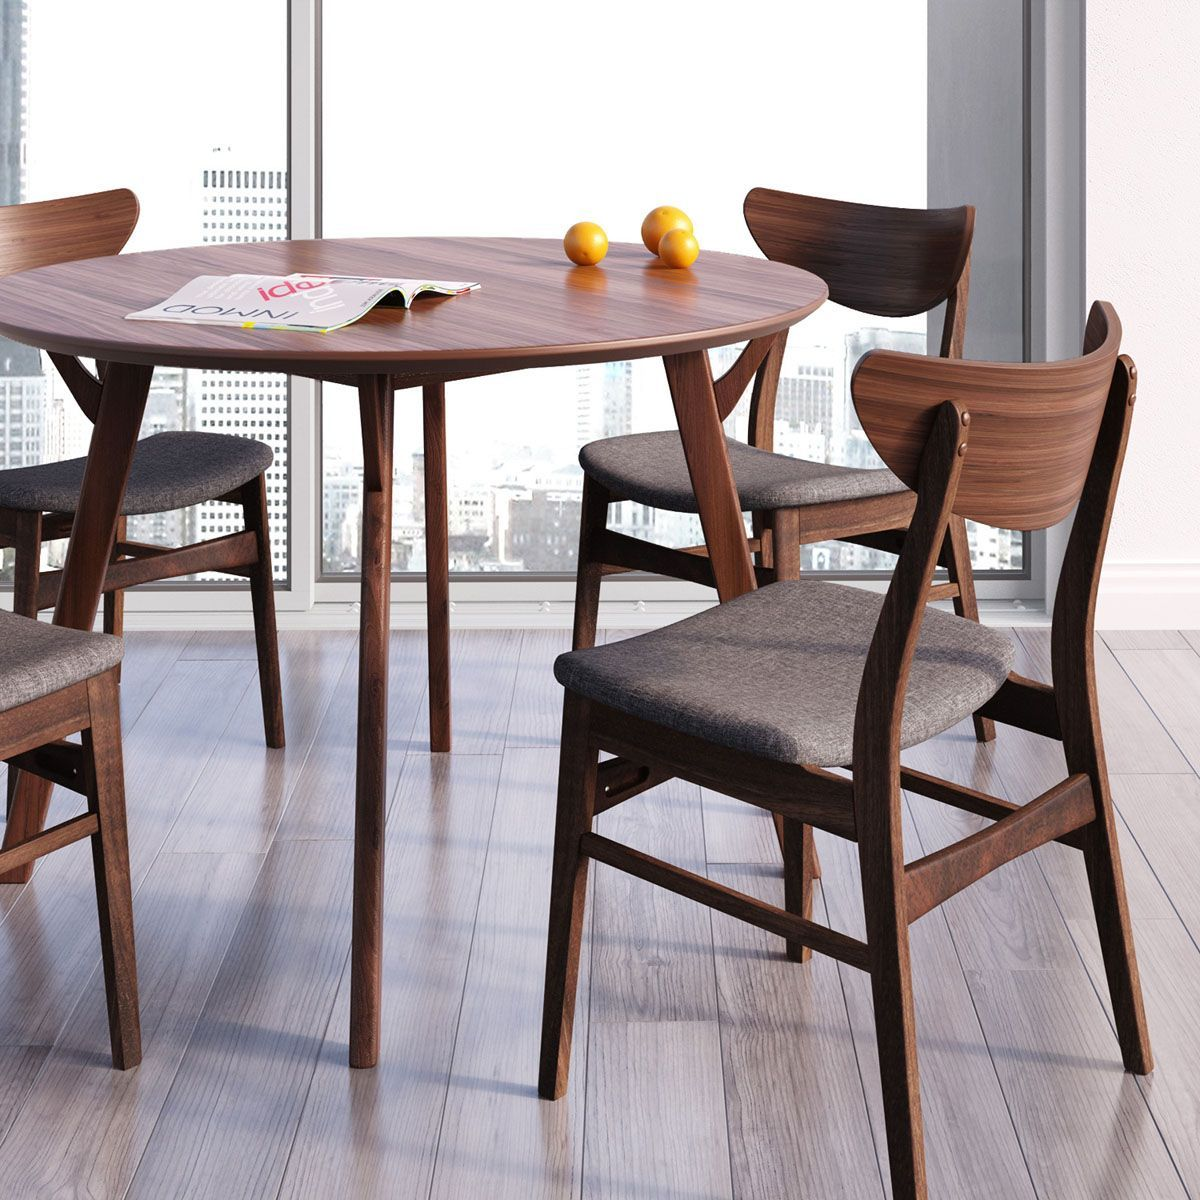 Scandi Round Dining Table The Combines Simplicity And Style In Clic Danish Form Its 42 Diameter Makes A Perfect